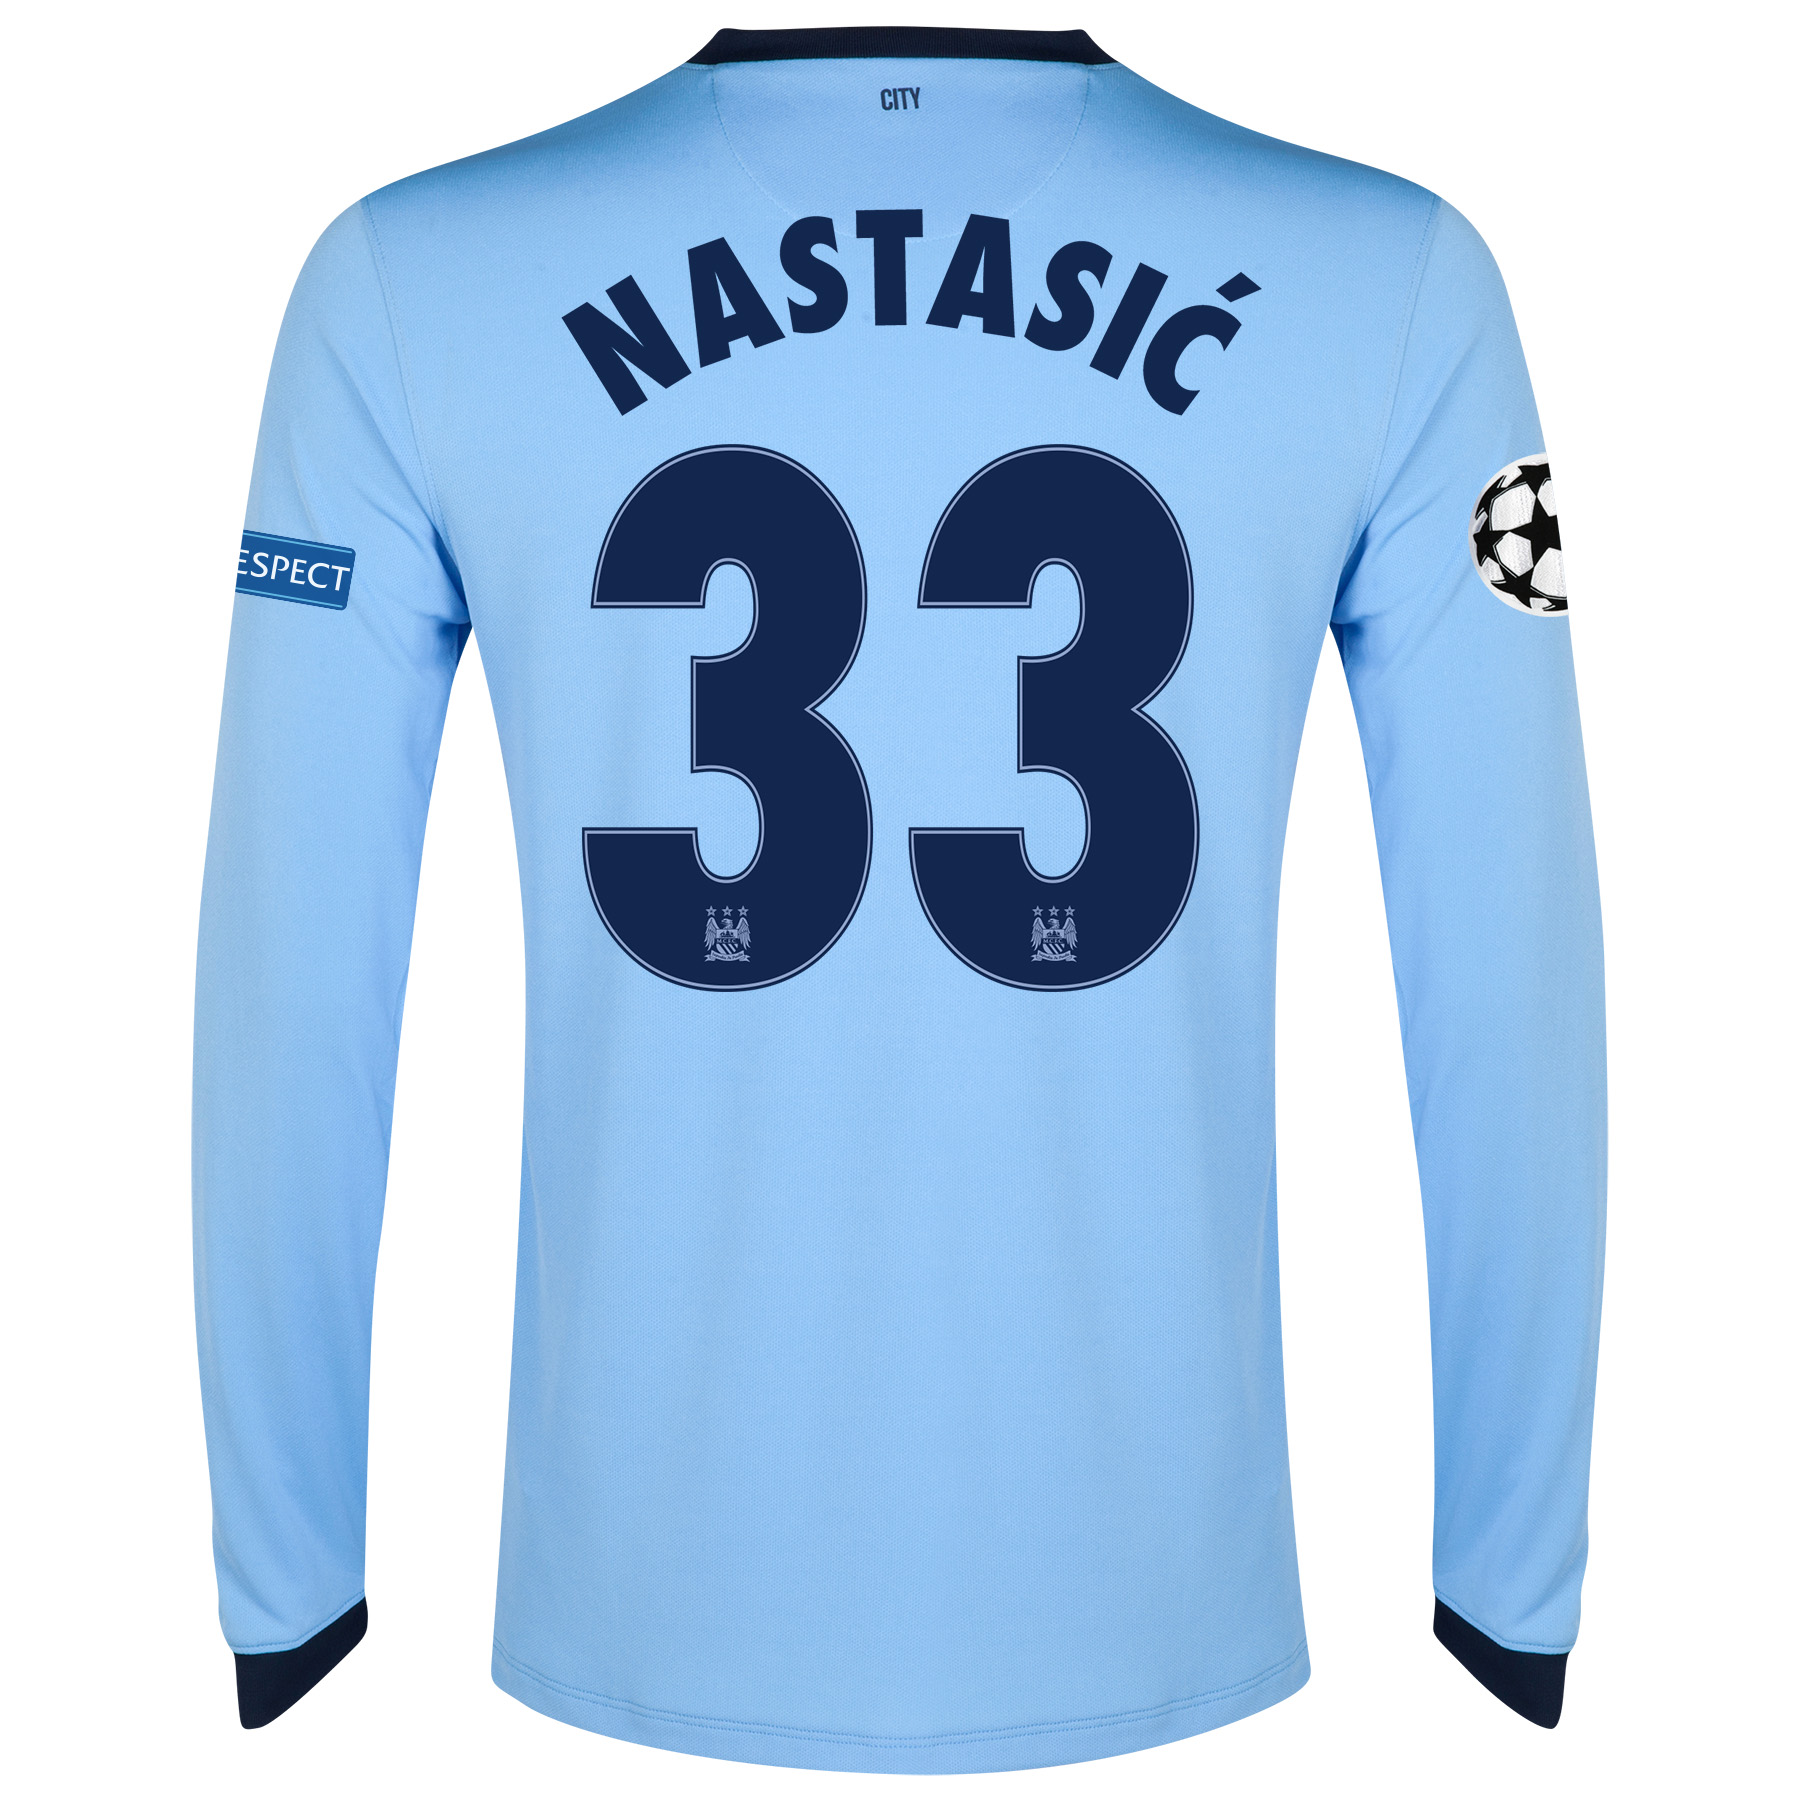 Manchester City UEFA Champions League Home Shirt 2014/15 - Long Sleeve Sky Blue with Nastasic 33 printing